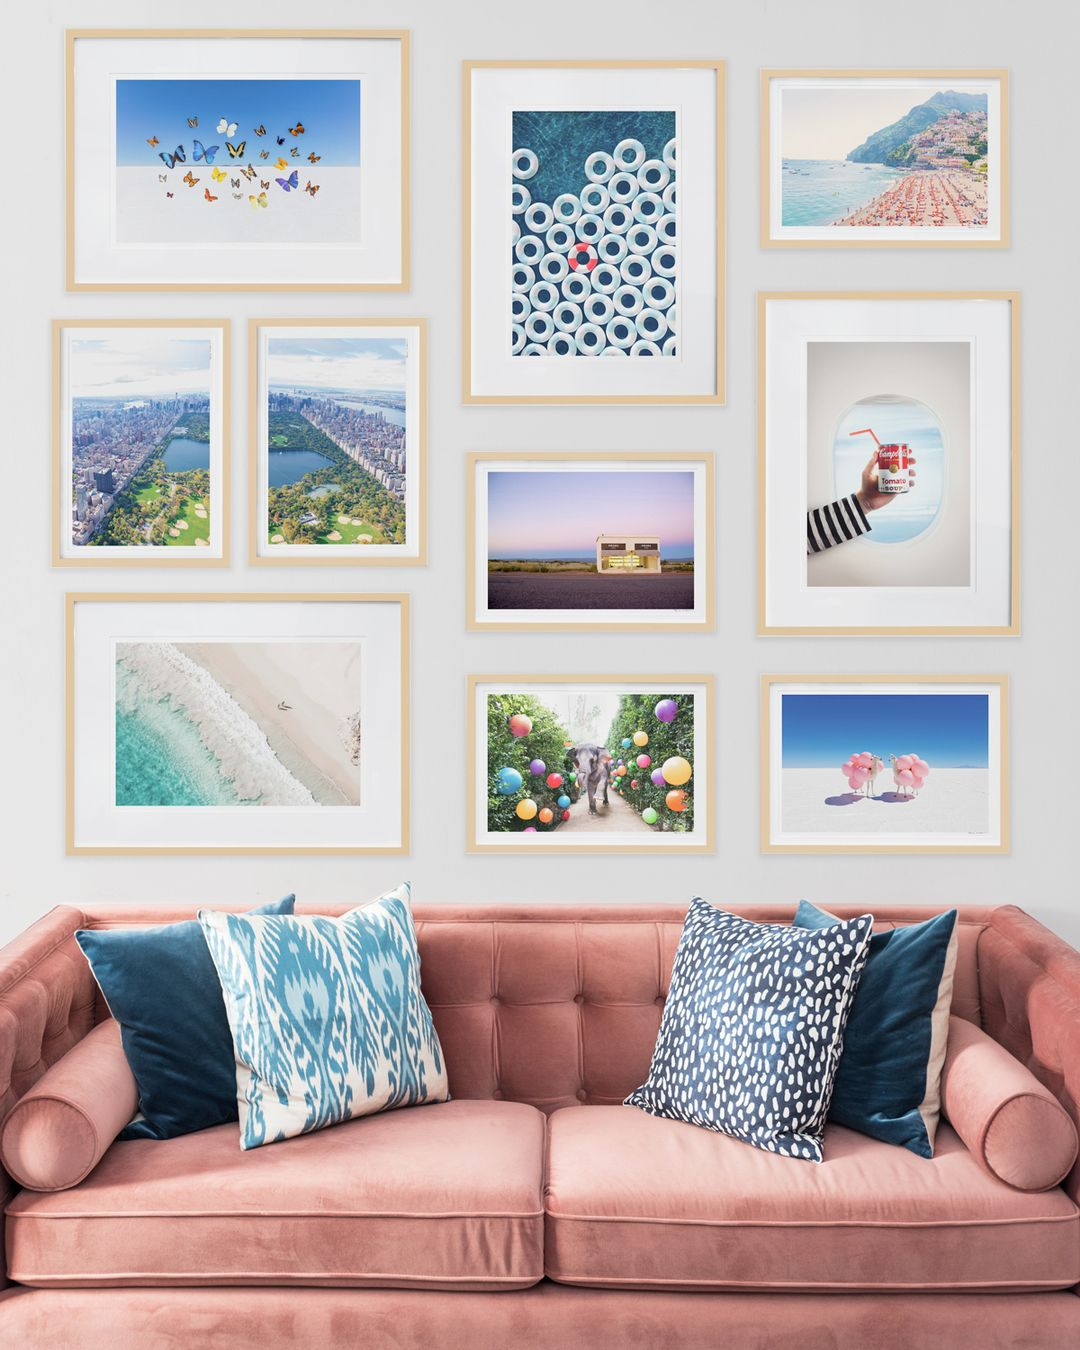 Gray Malin Gallery Wall - Free Framing Site Wide